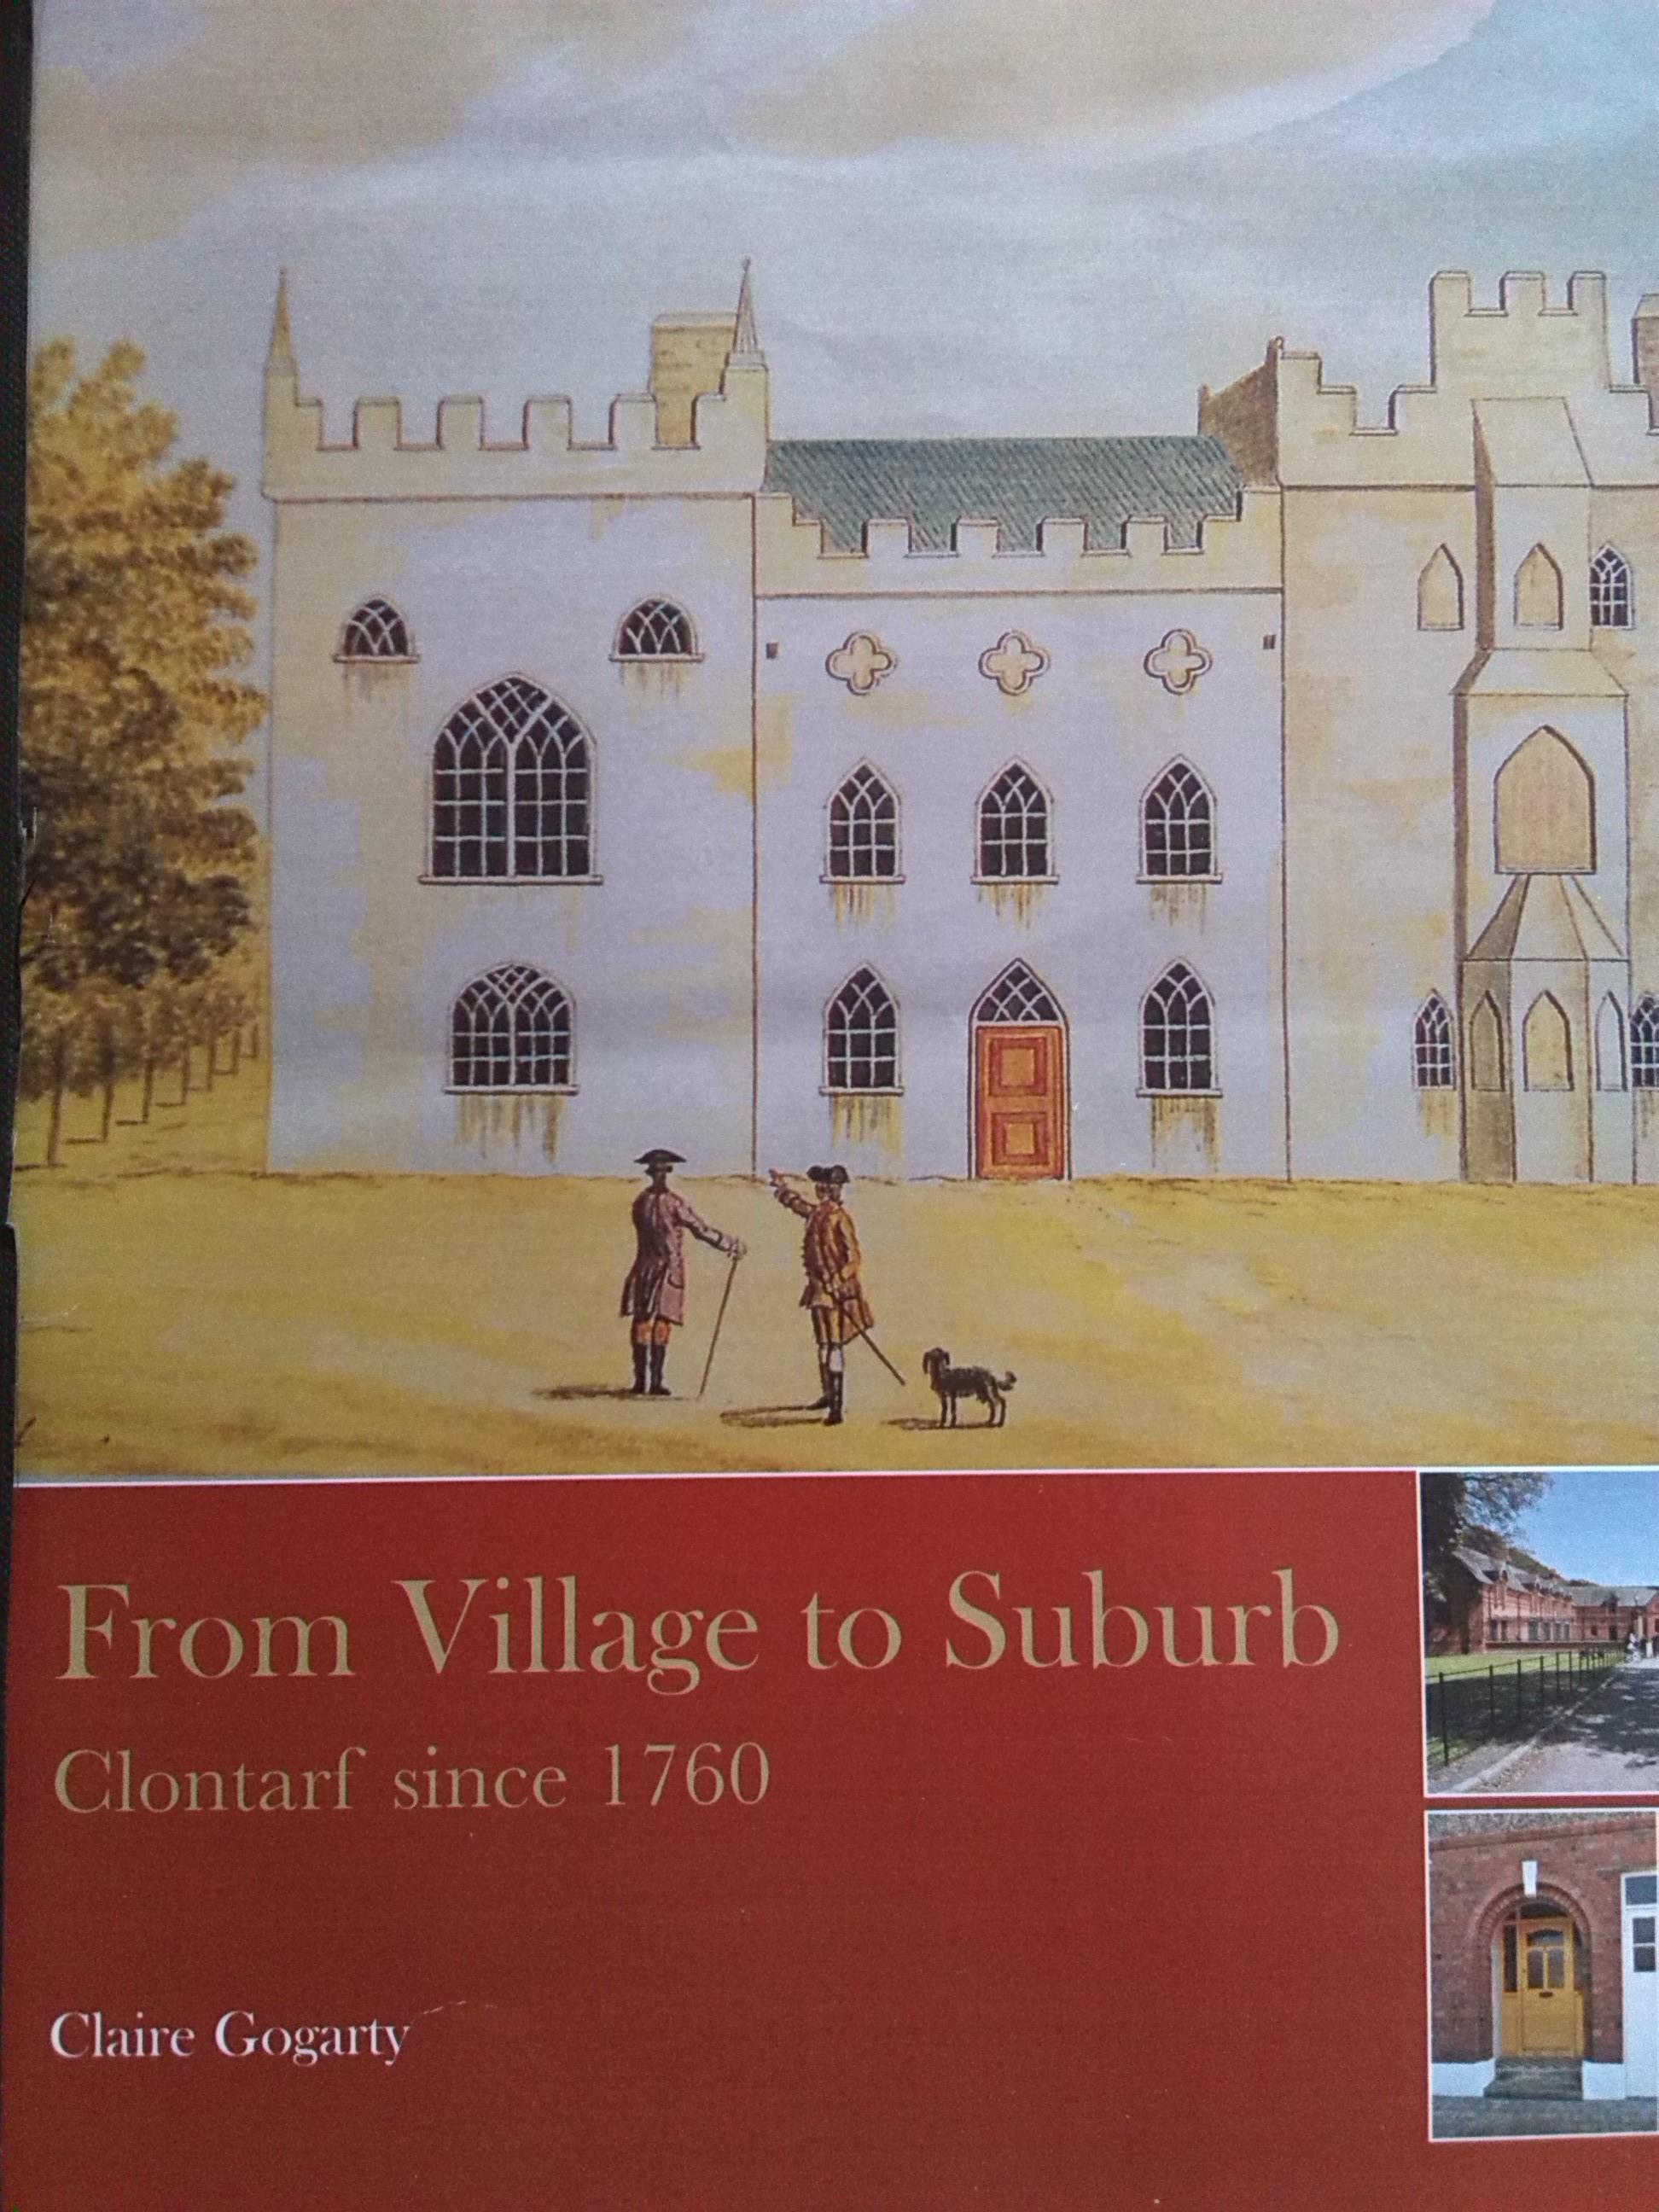 Book Launch - From Village to Suburb: the Building of Clontarf since 1760.